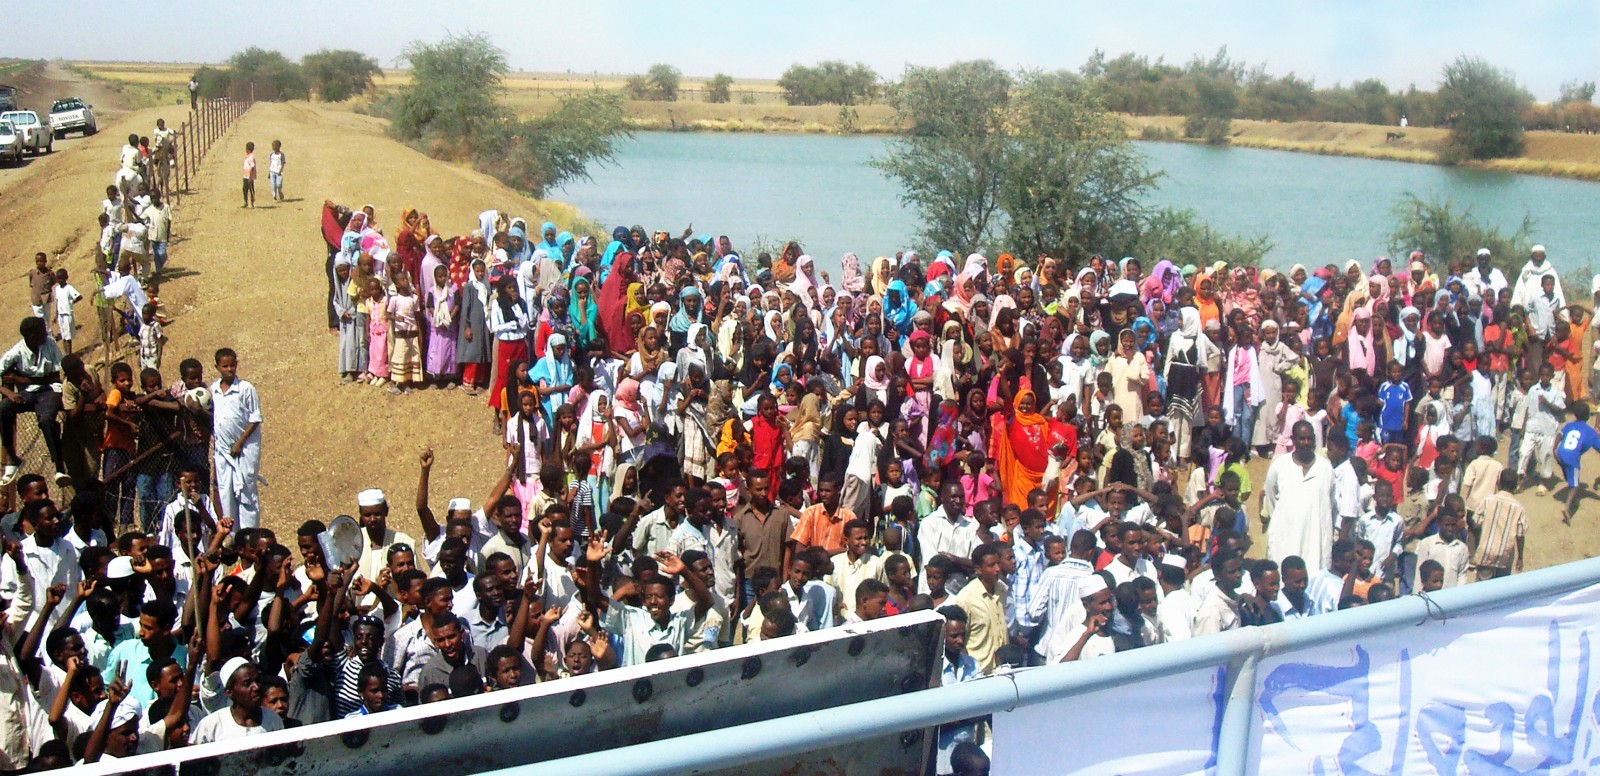 Opening of a Package Plant for Drinkind Water in Sudan